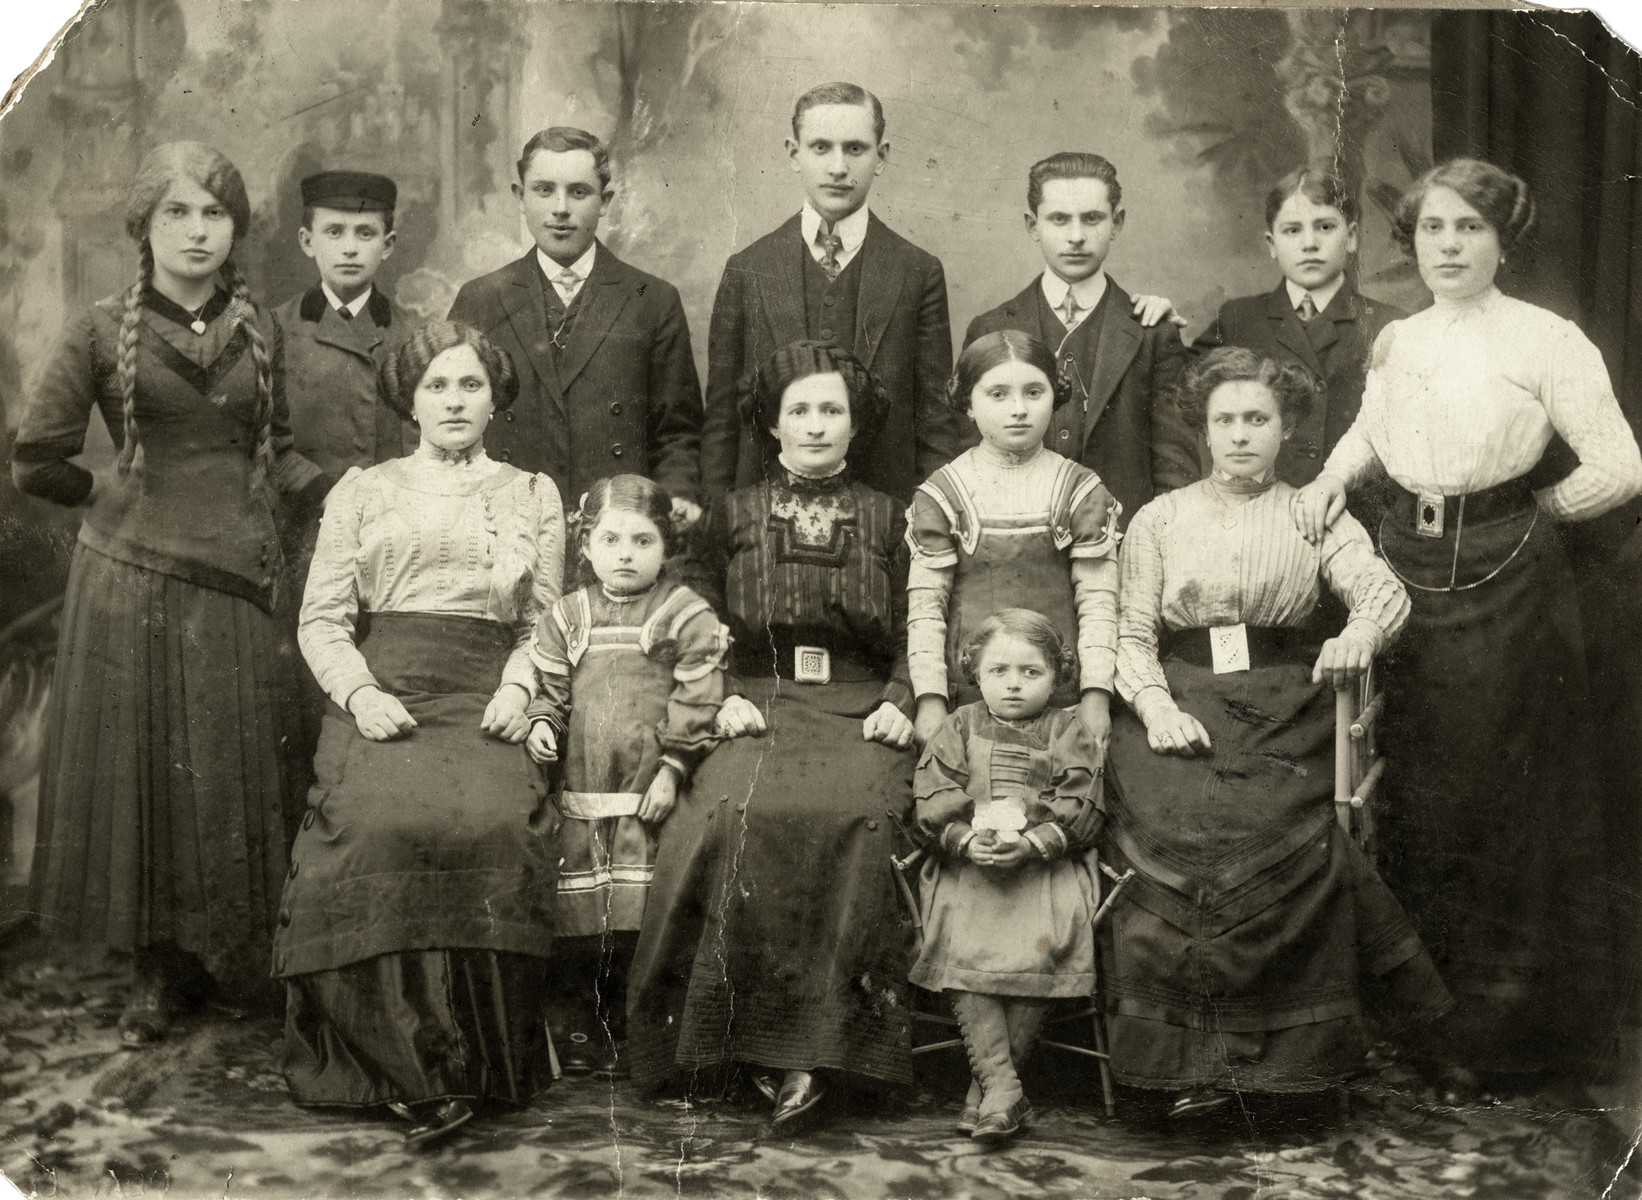 Studio portrait of Szajfman family.  Among those pictured are Tsvetle (Chaim Leichter's mother, standing far right) and Benjamin Szajfman (father of Sara), standing third from the right).  His brother Eliezer is to his left.